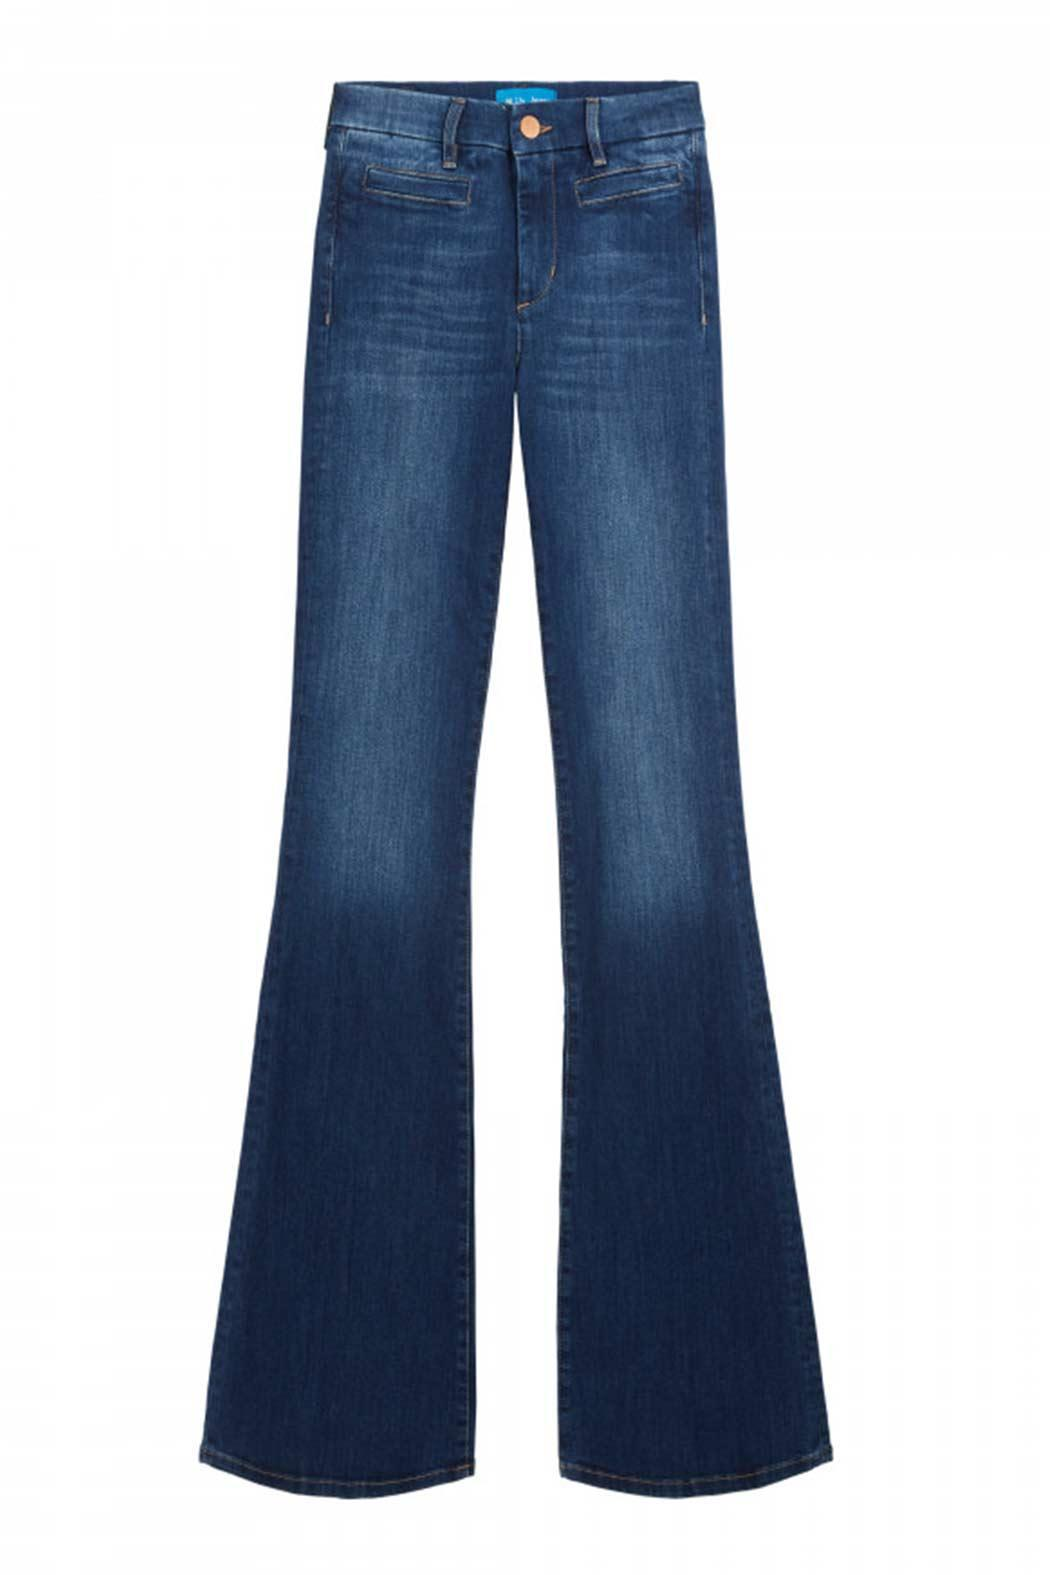 MiH Jeans High Rise Kick Flare Jeans - Main Image